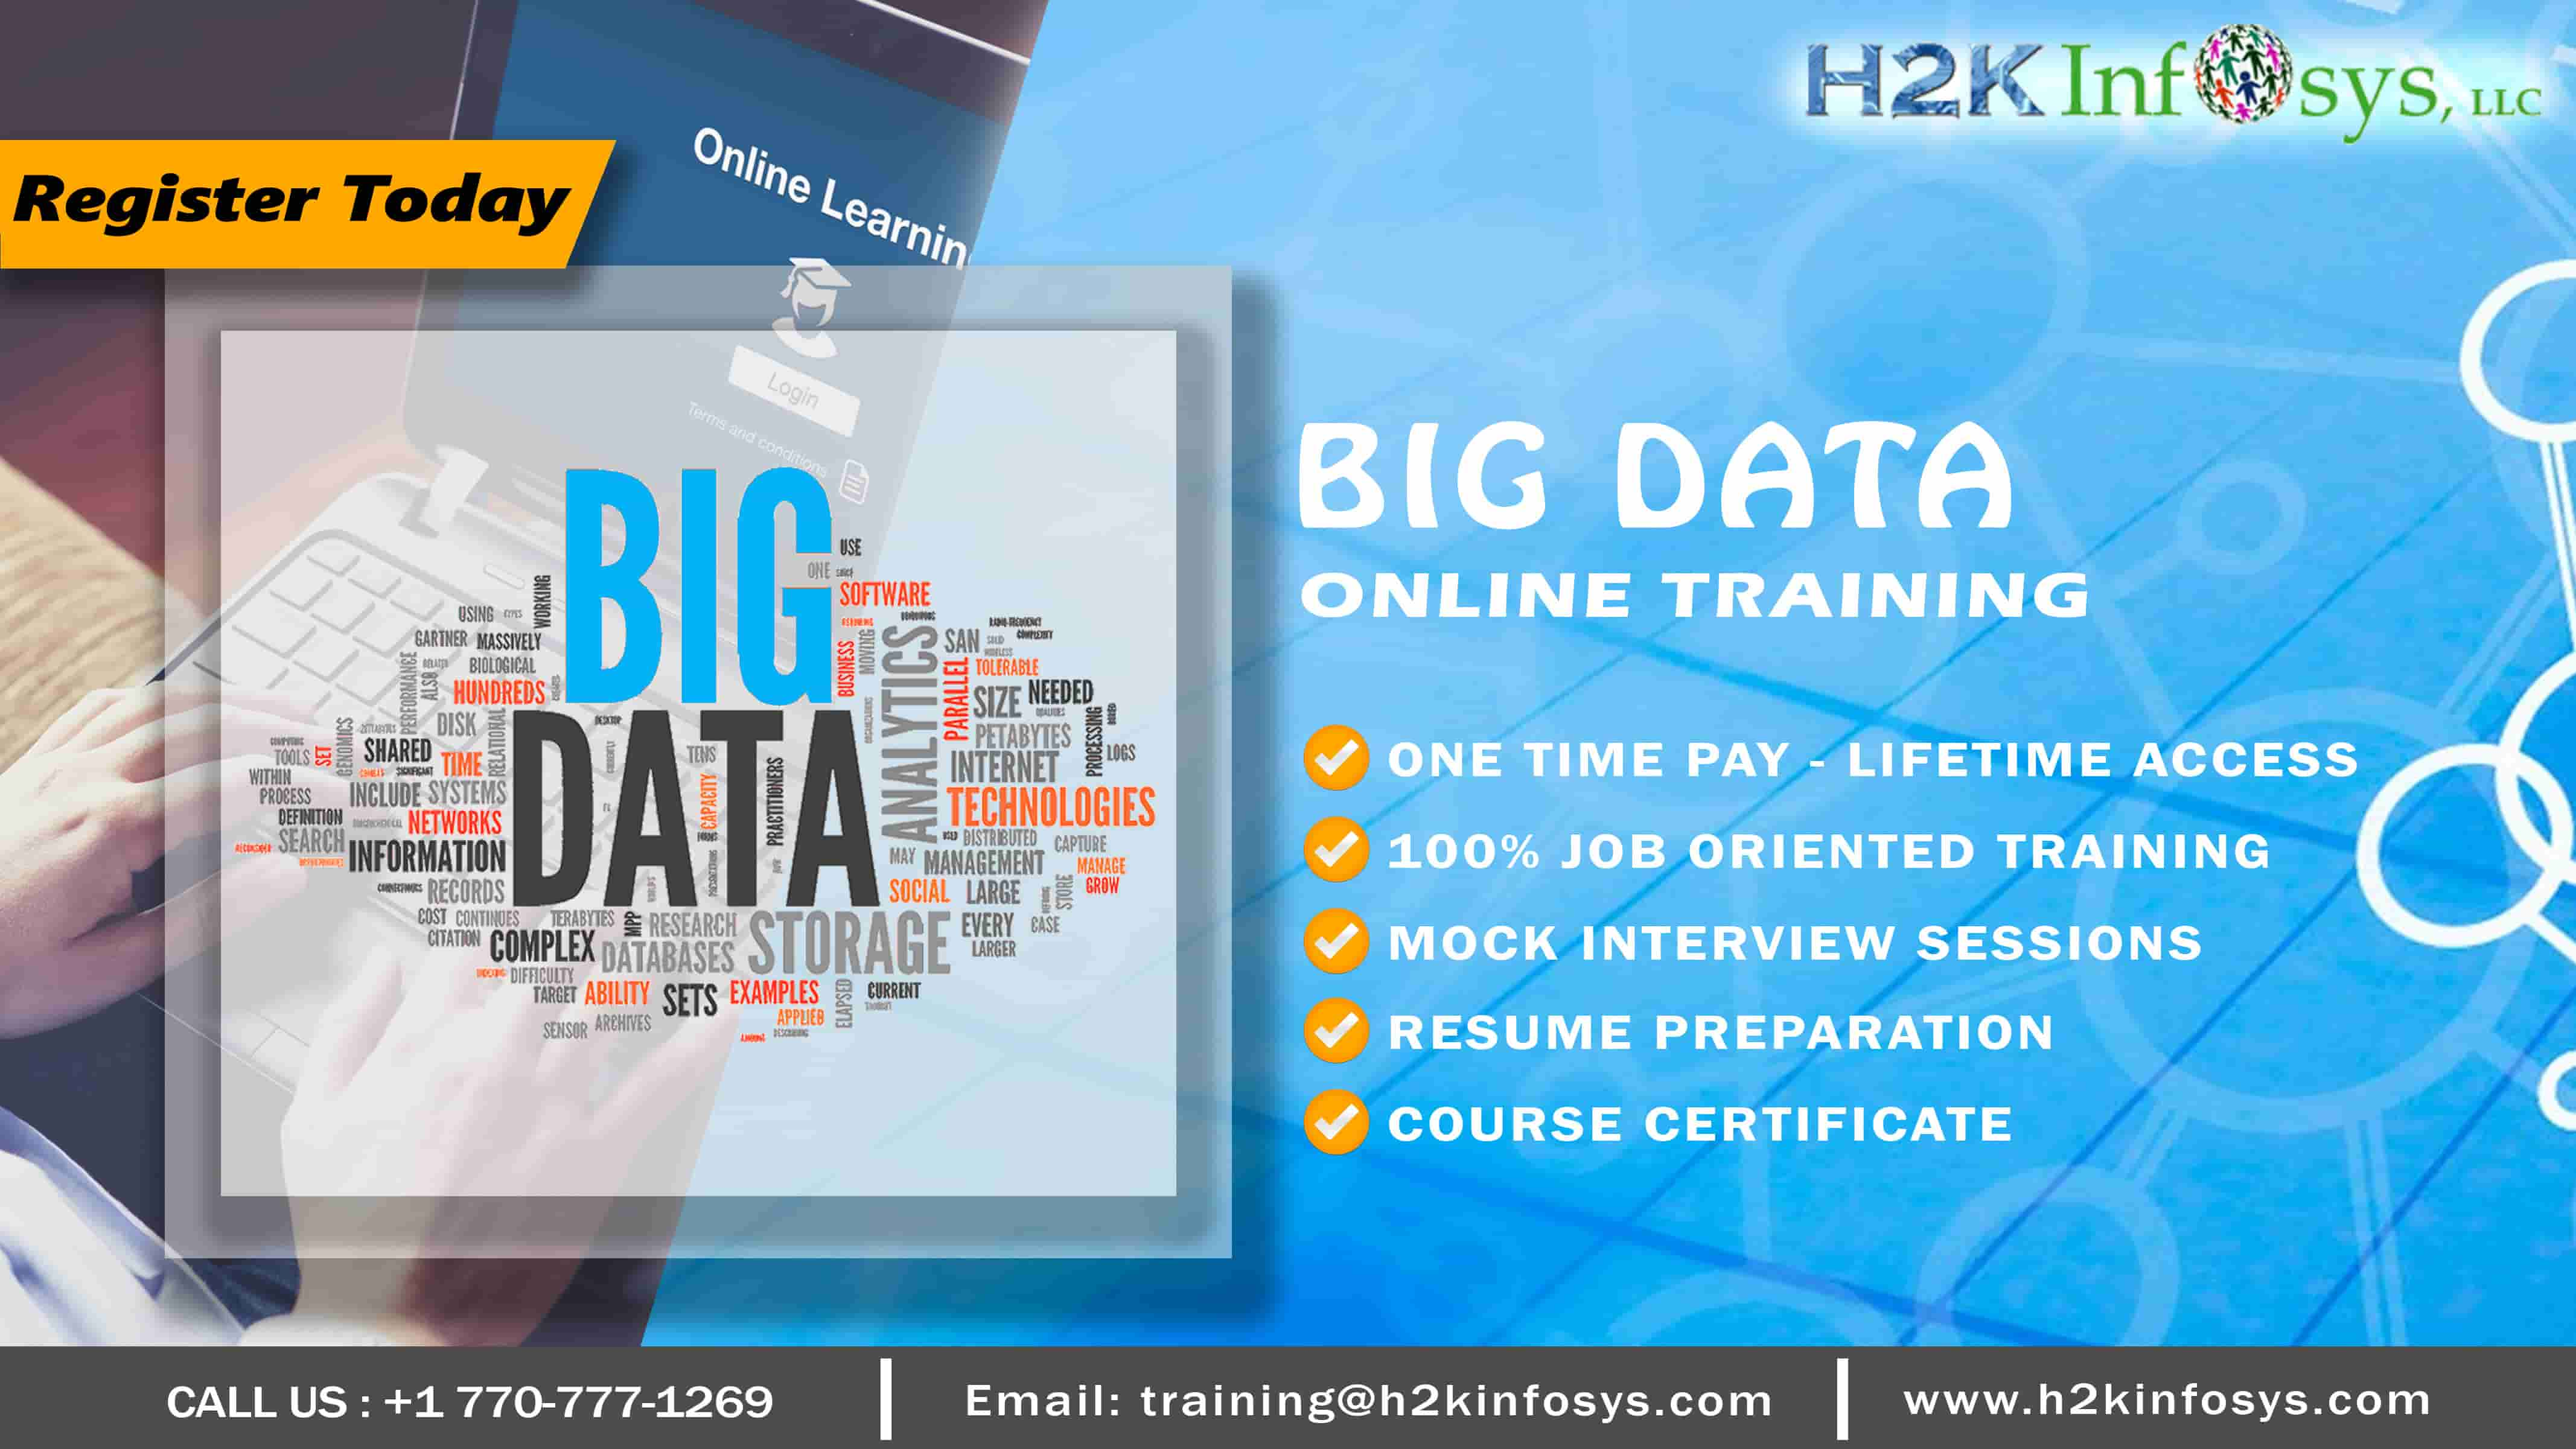 Bigdata Online Course with Placements Assistance